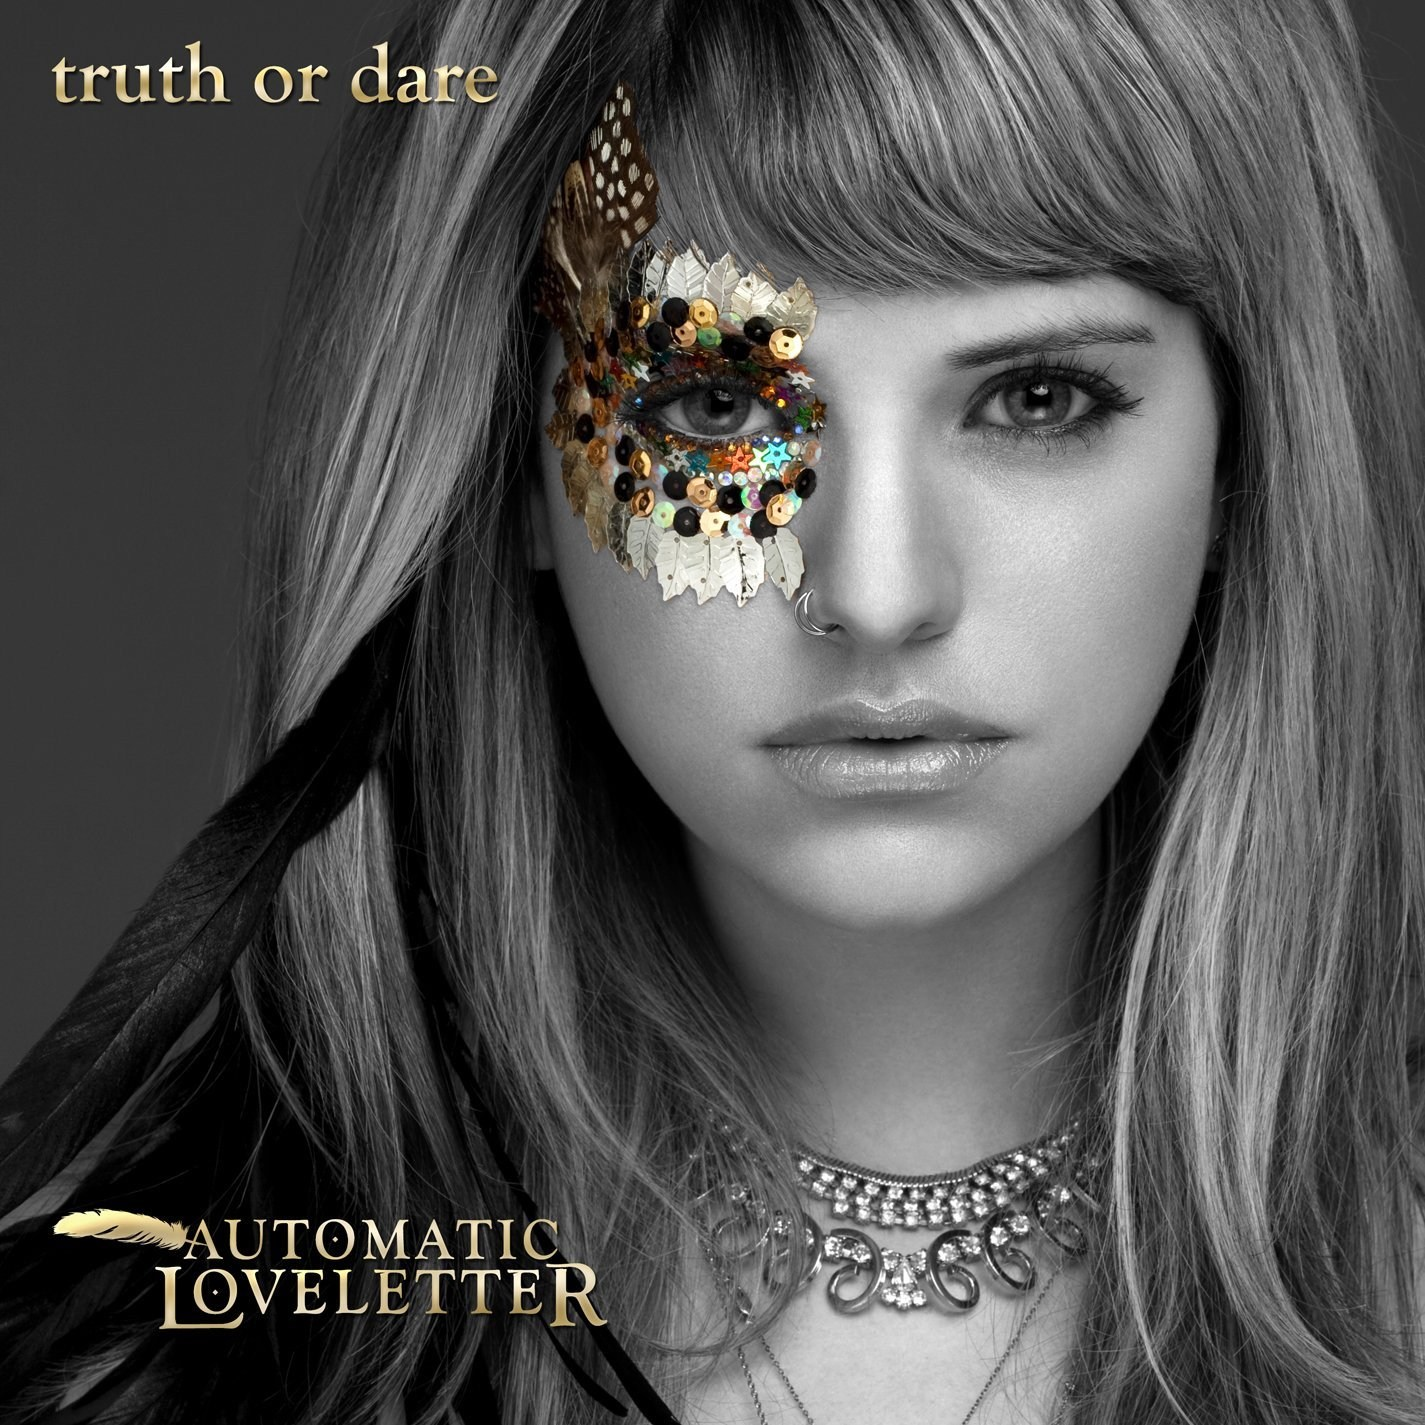 Automatic Loveletter Truth Or Dare Zip